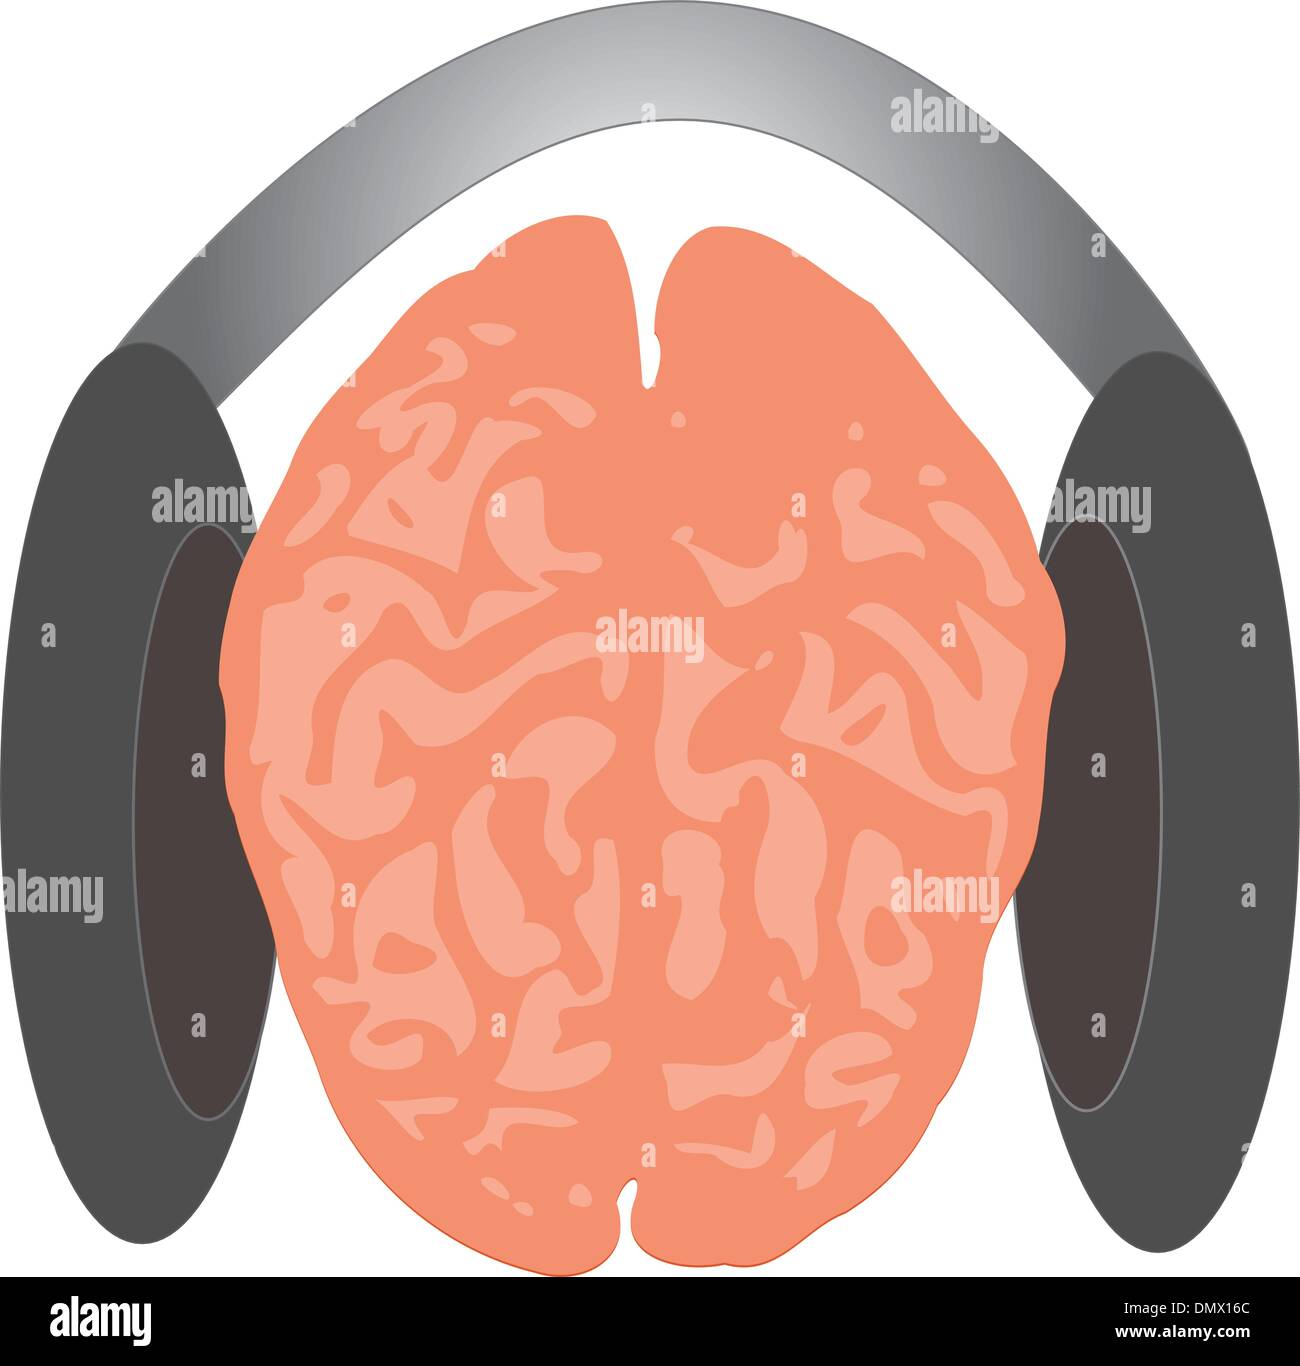 Brain listenimg to sounds - Stock Image